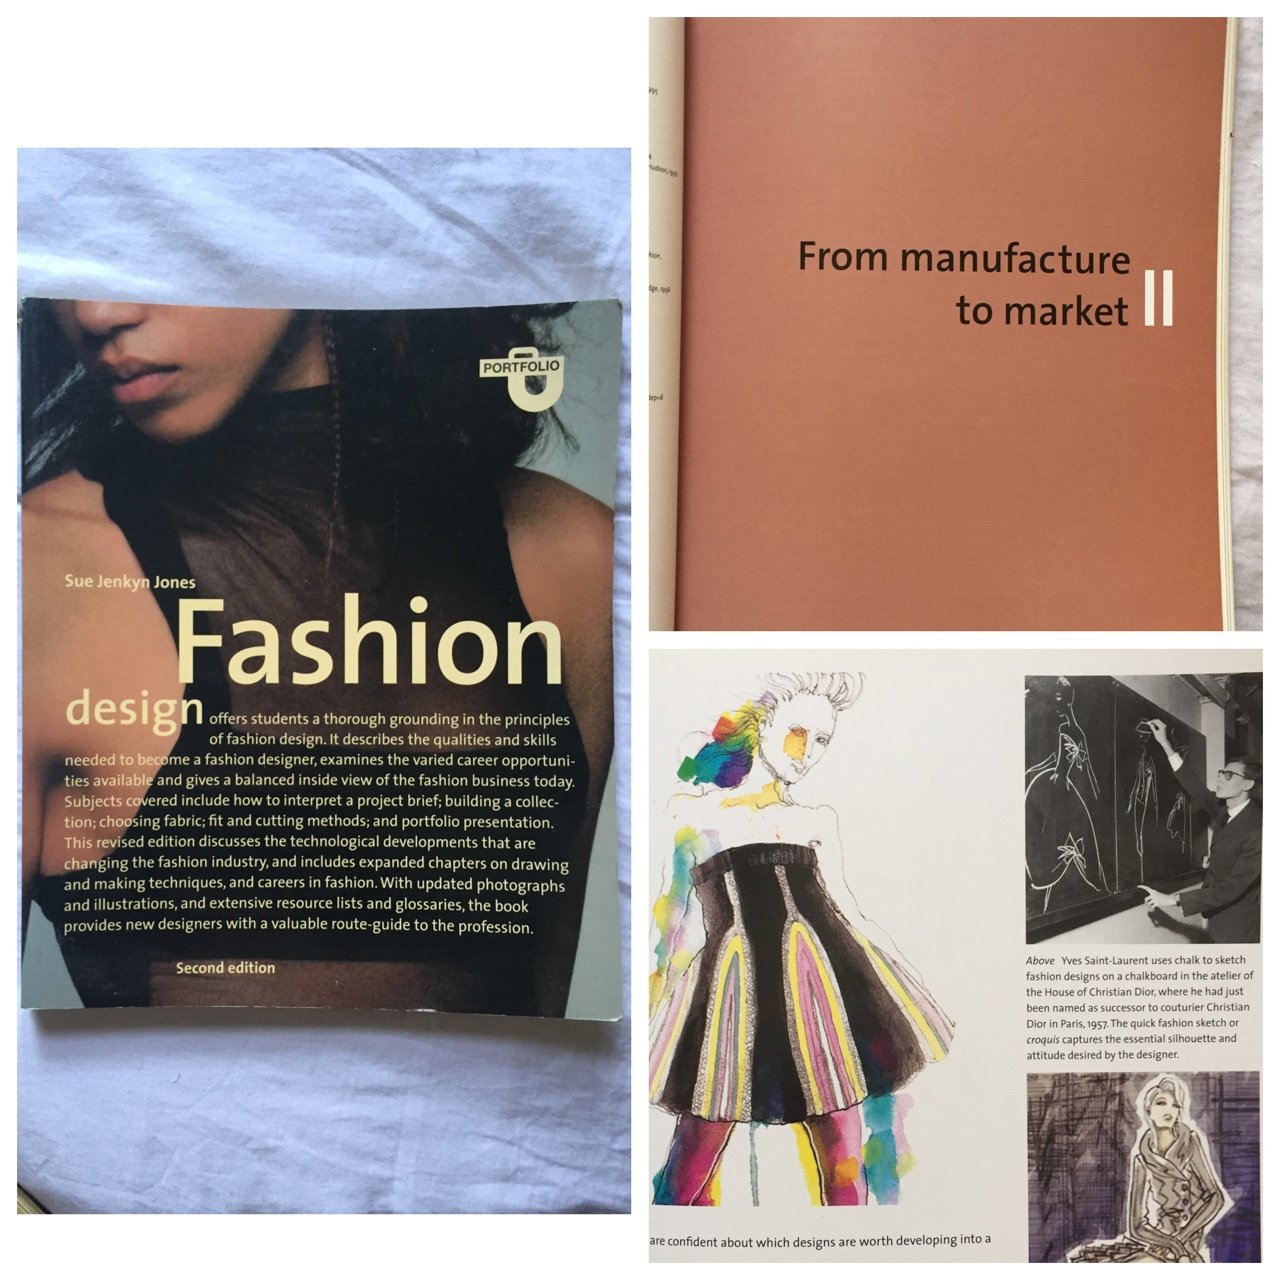 fashion design books for fashion students the best design books @sleko2. 3 years ago. London, UK. Fashion Design book - the best ...